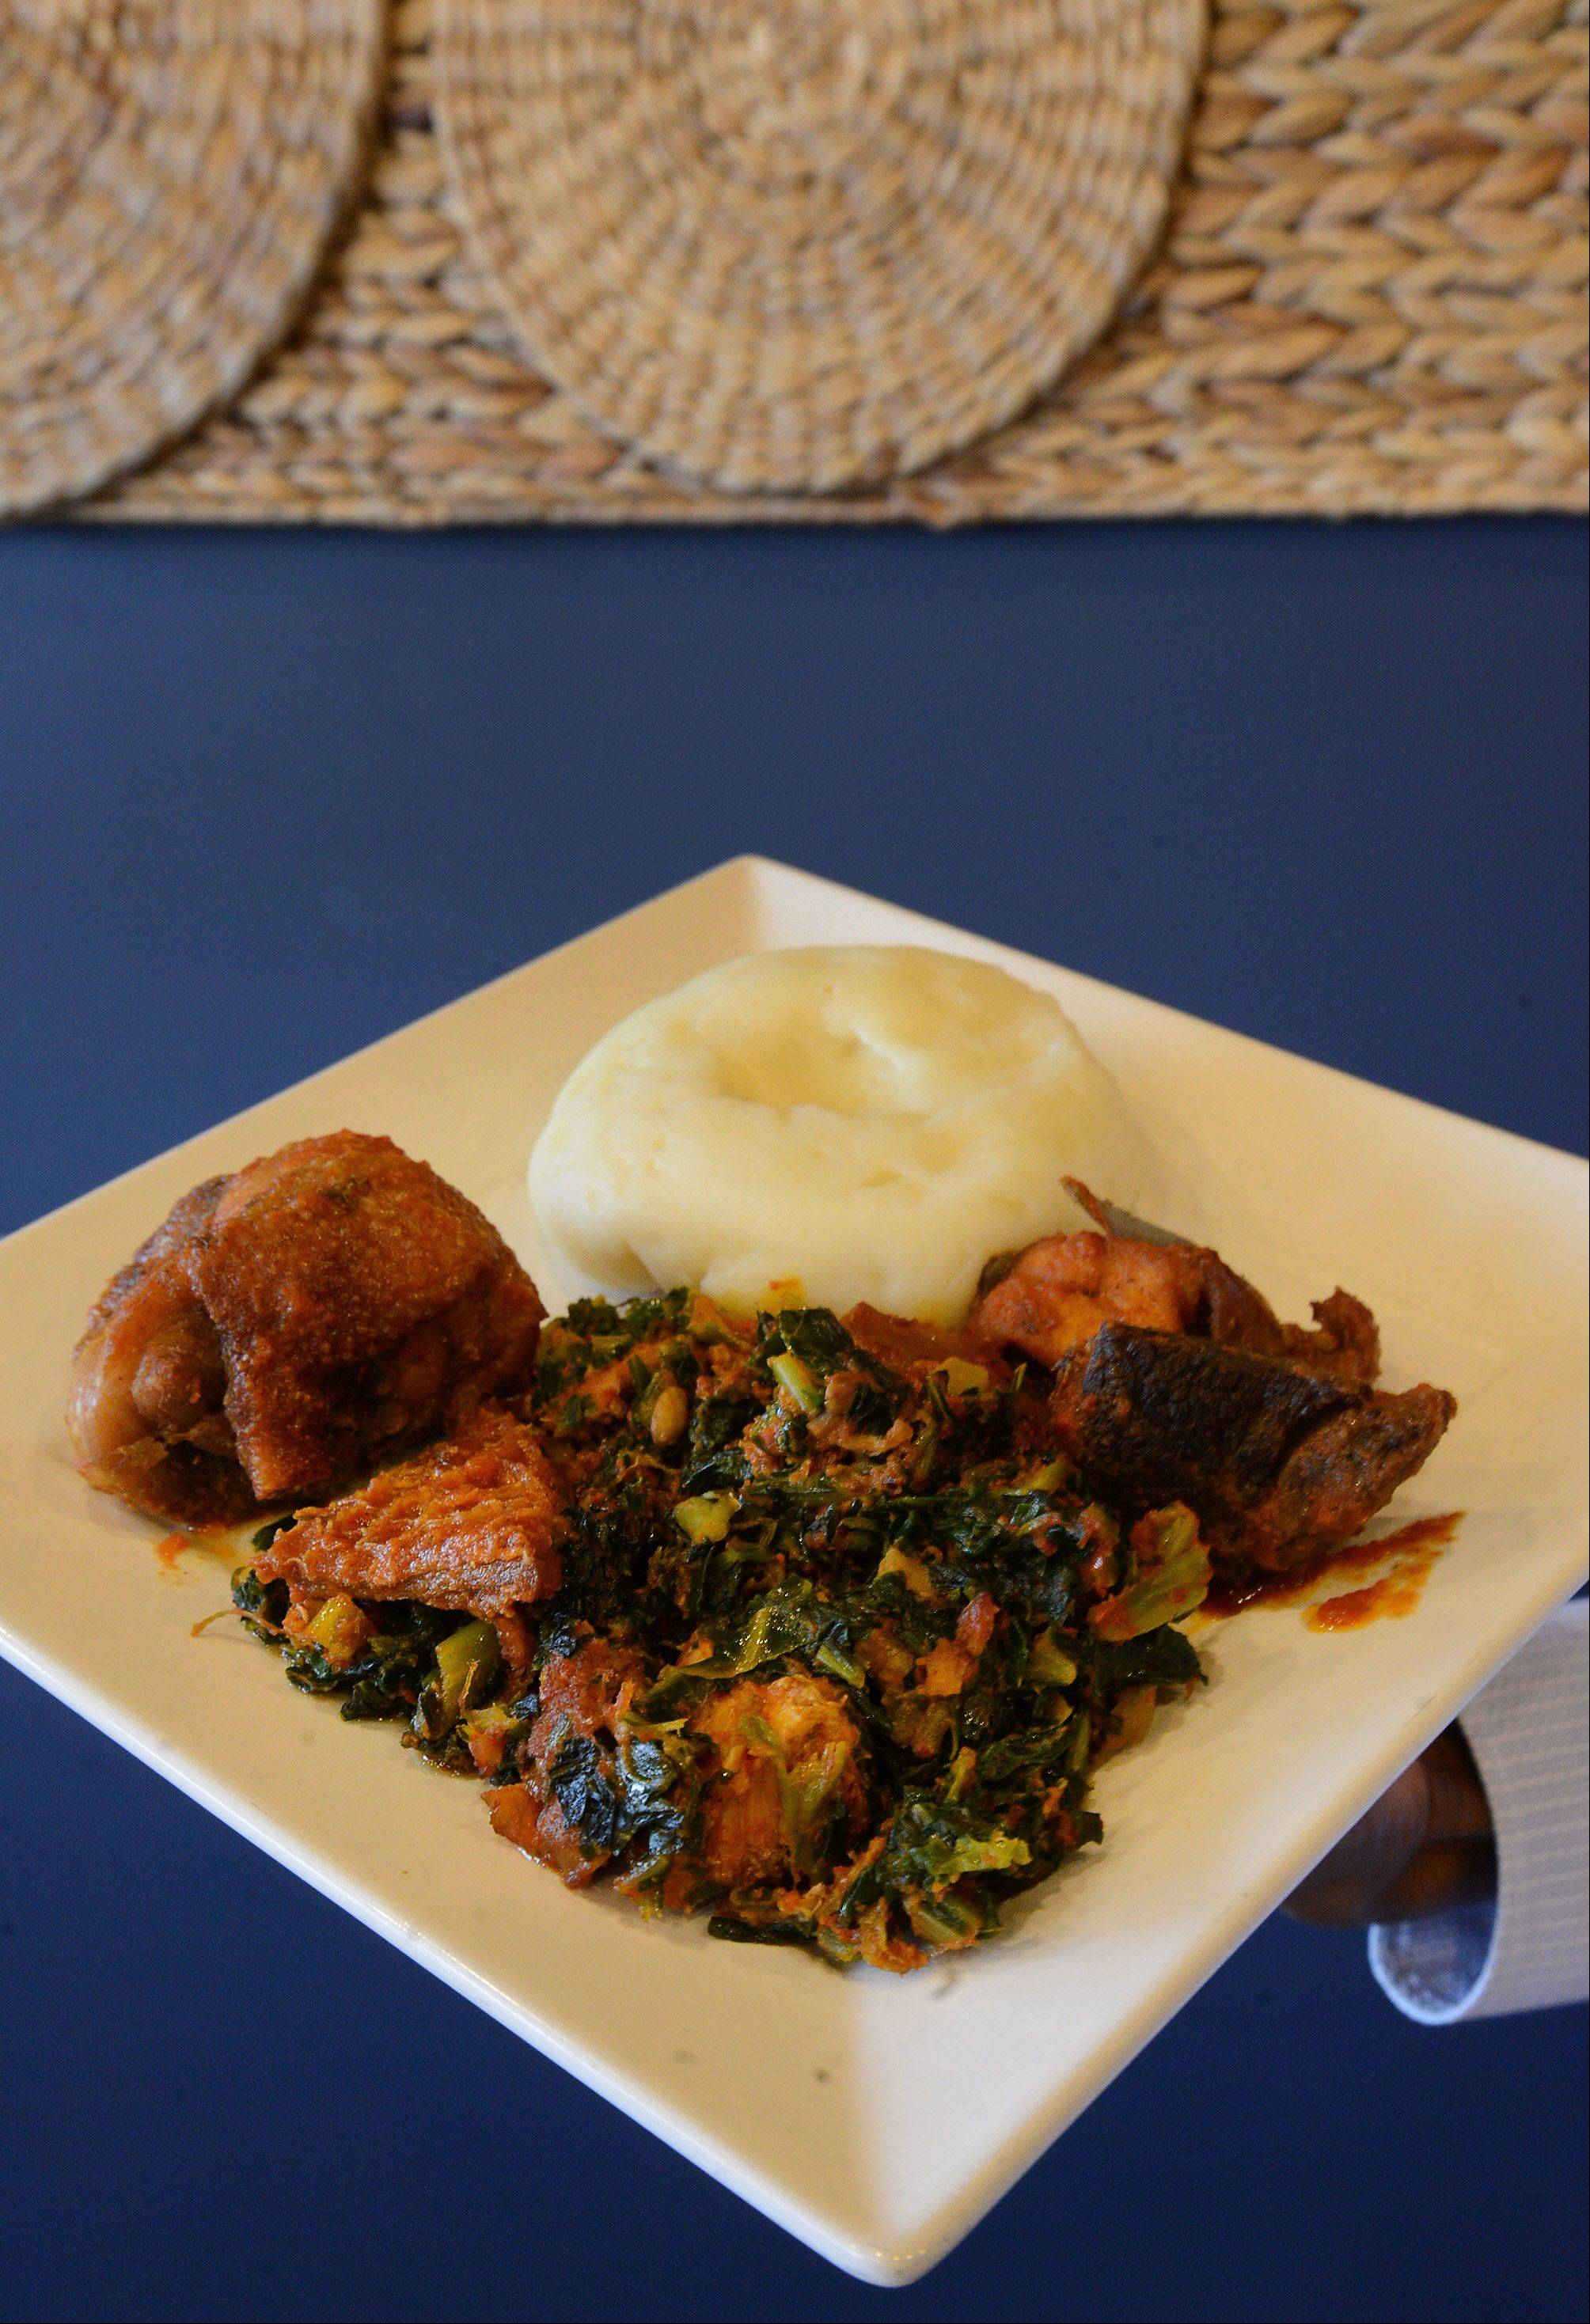 Efo riro, or spinach vegetable soup, is served with chicken and side of fufu, or pounded yam.